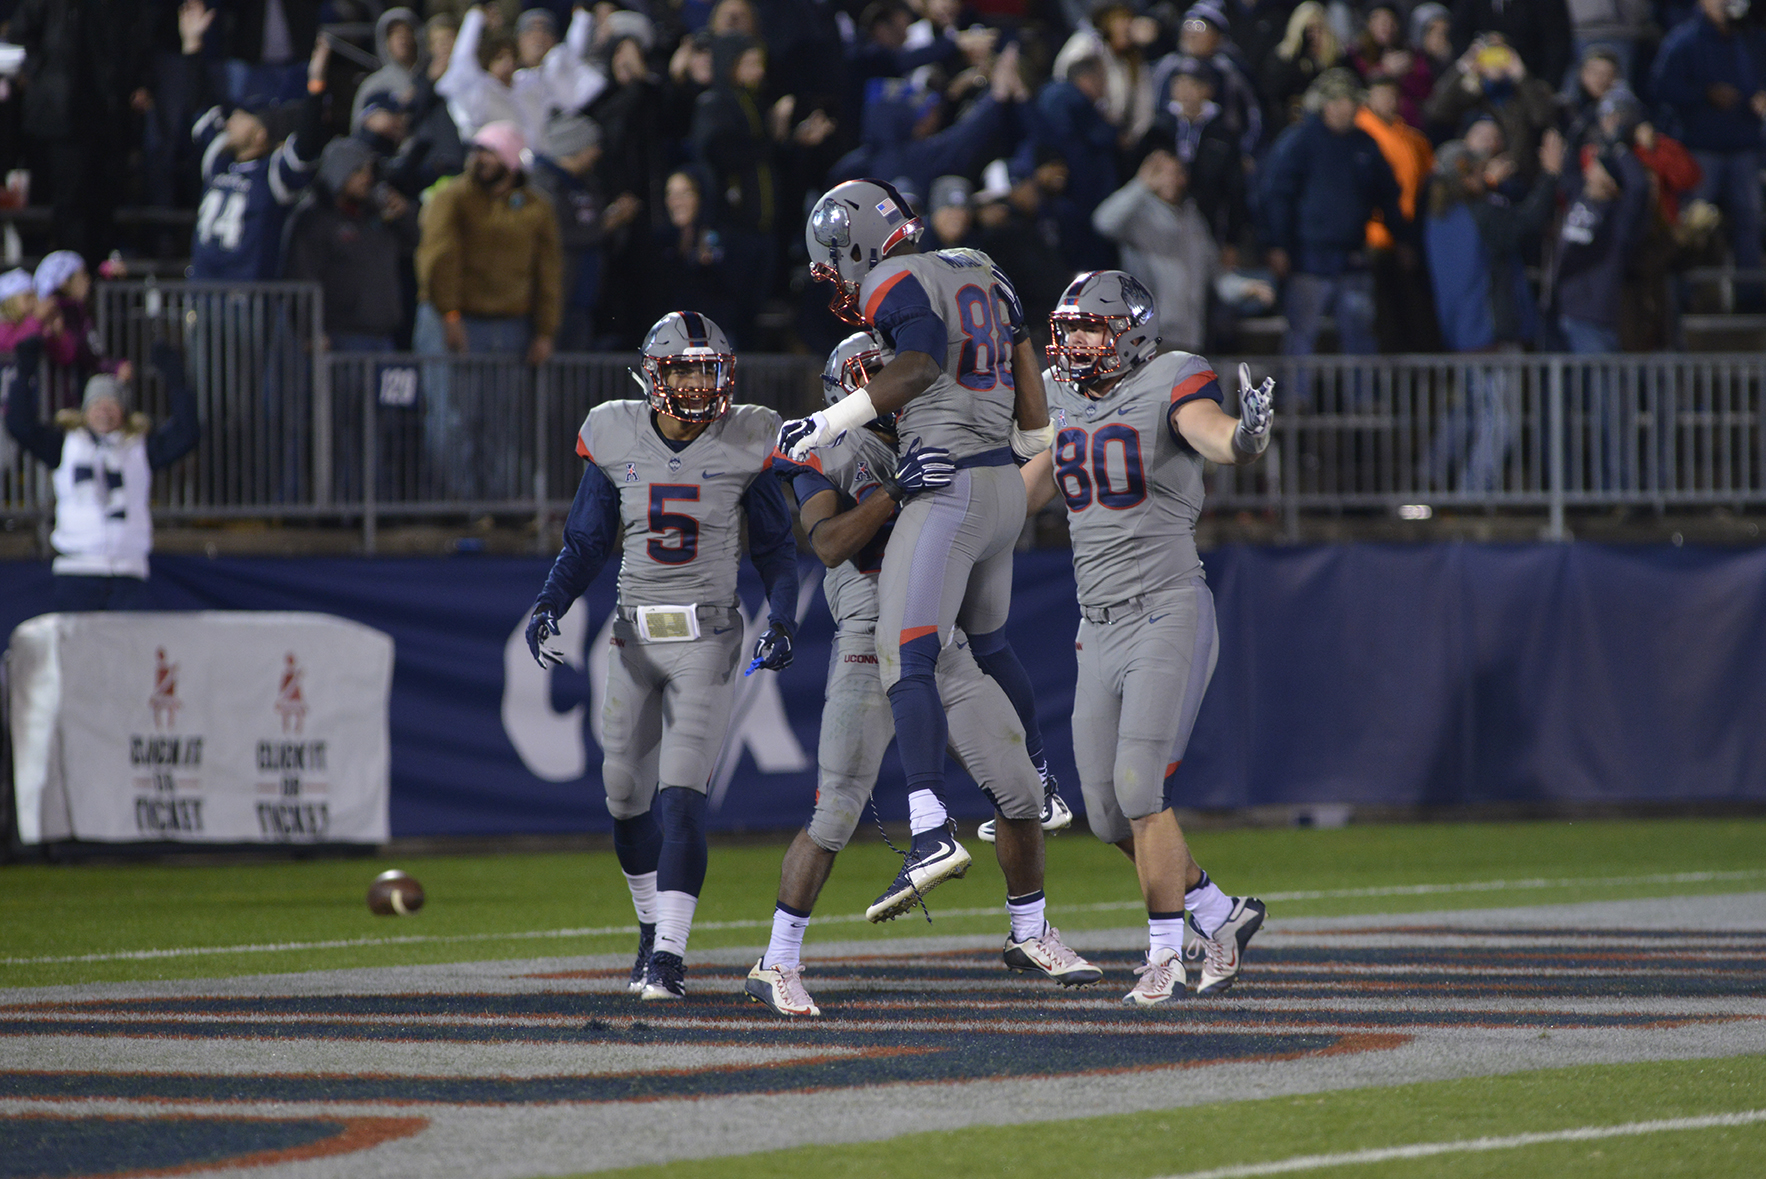 UConn players celebrate after a touchdown from running back Arkeel Newsome (second from left) during the Huskies' game against East Carolina at Pratt & Whitney Stadium at Rentschler Field in East Hartford, Connecticut on Friday, Oct. 30, 2015. (Jason Jiang/The Daily Campus)